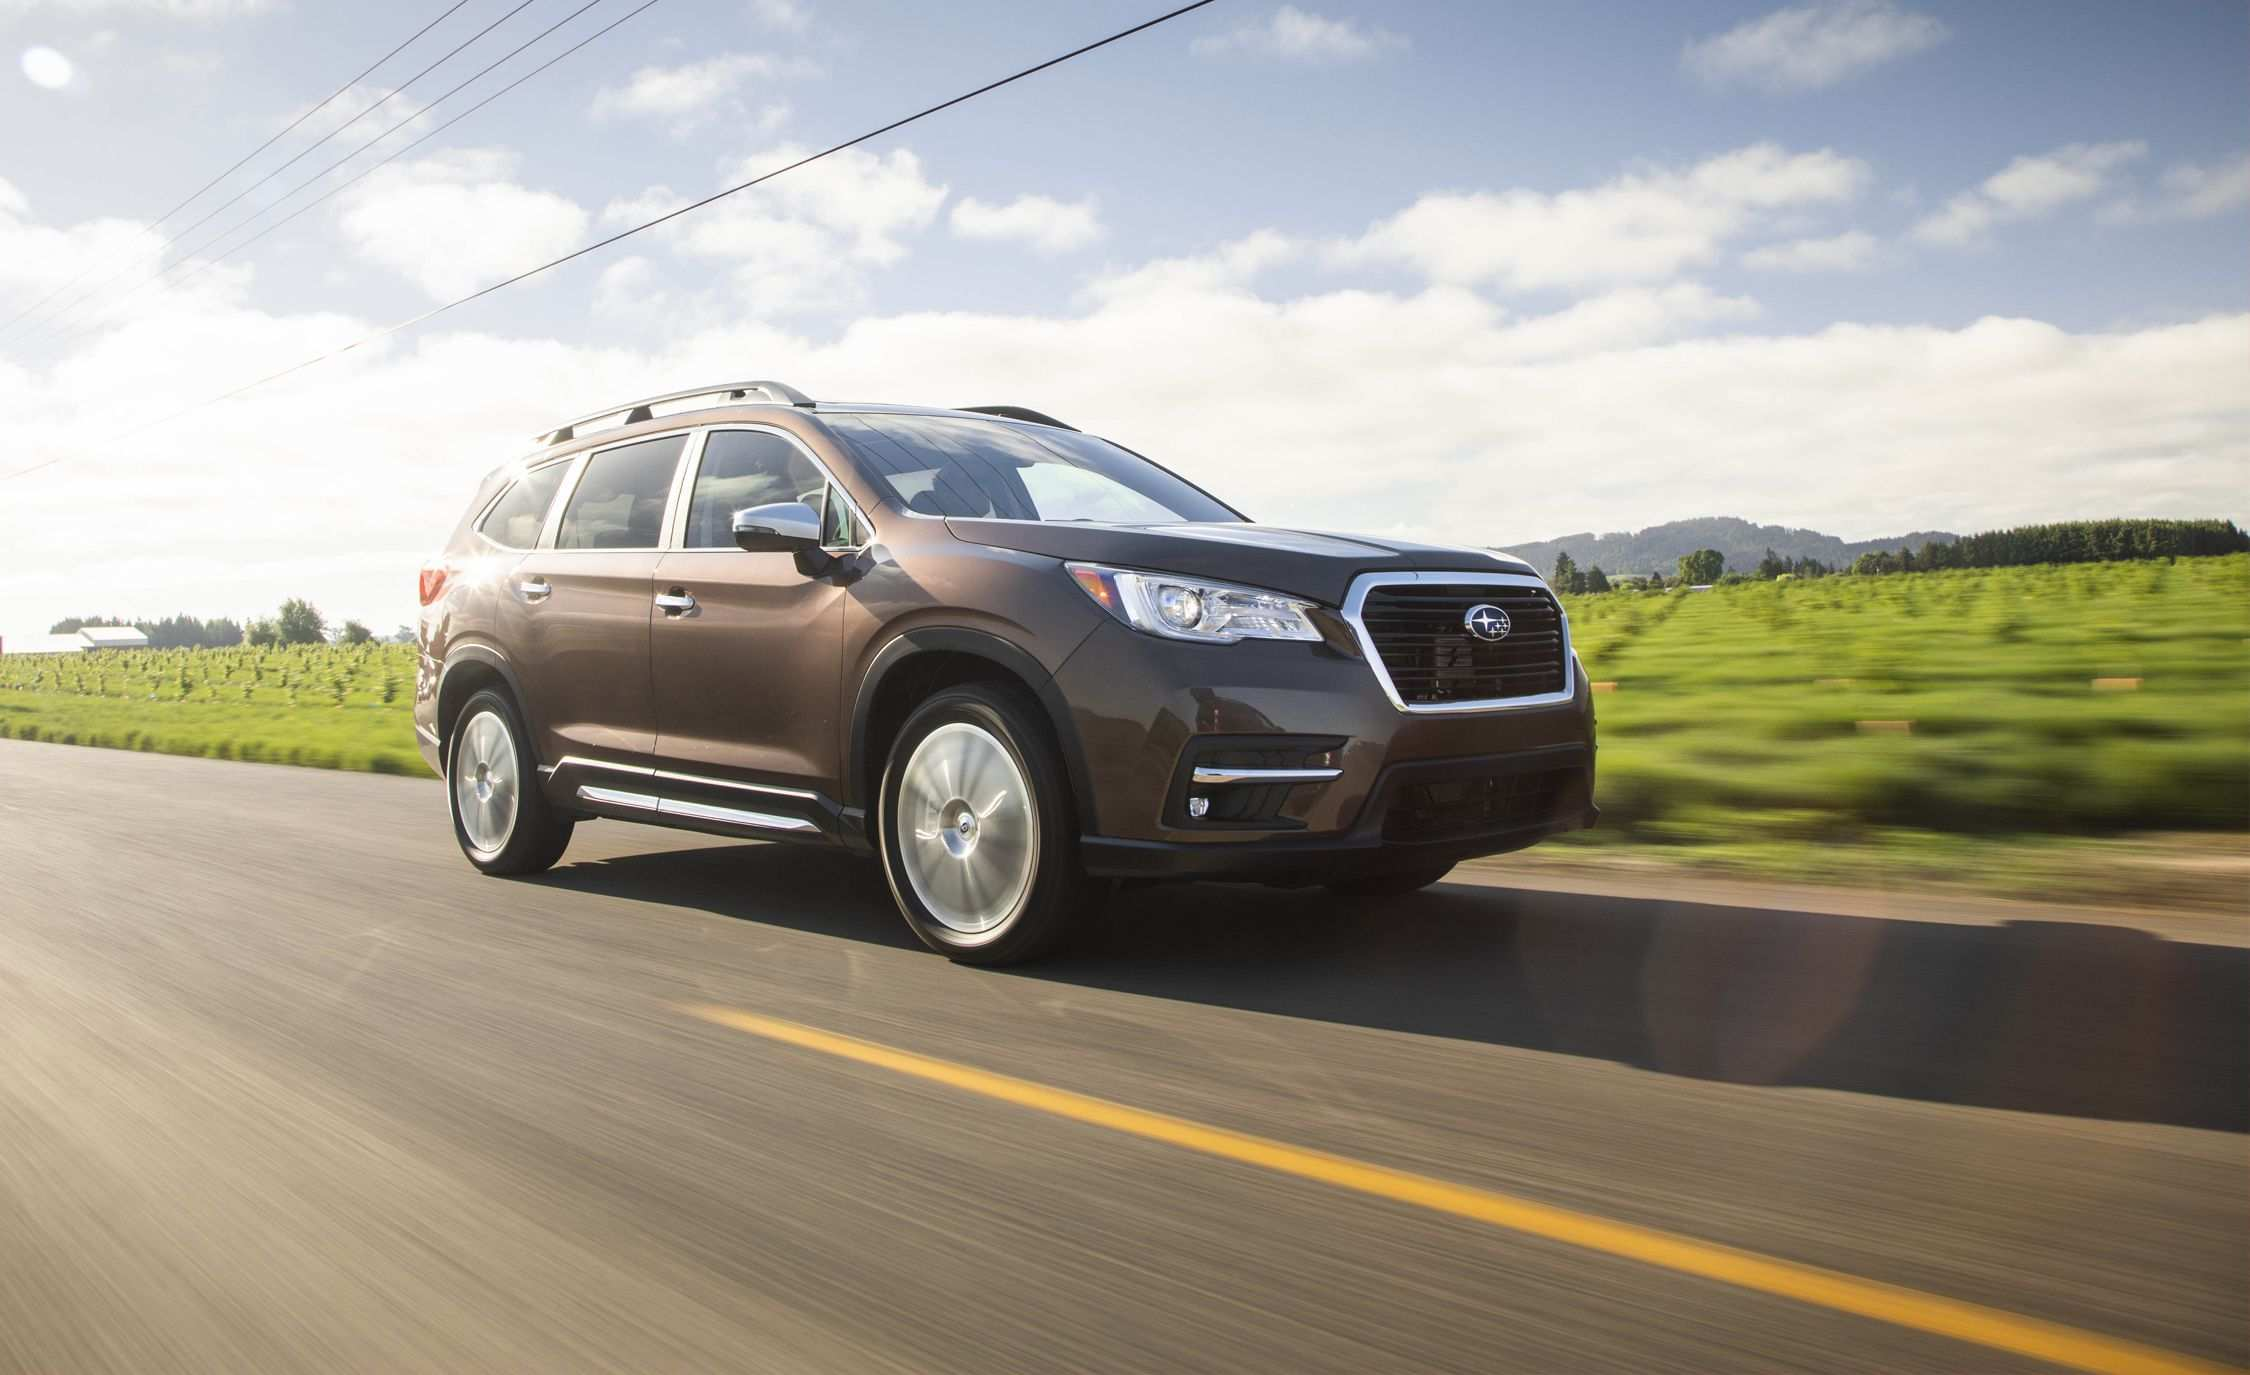 32 Best Review 2020 Subaru Ascent Ground Clearance Picture with 2020 Subaru Ascent Ground Clearance